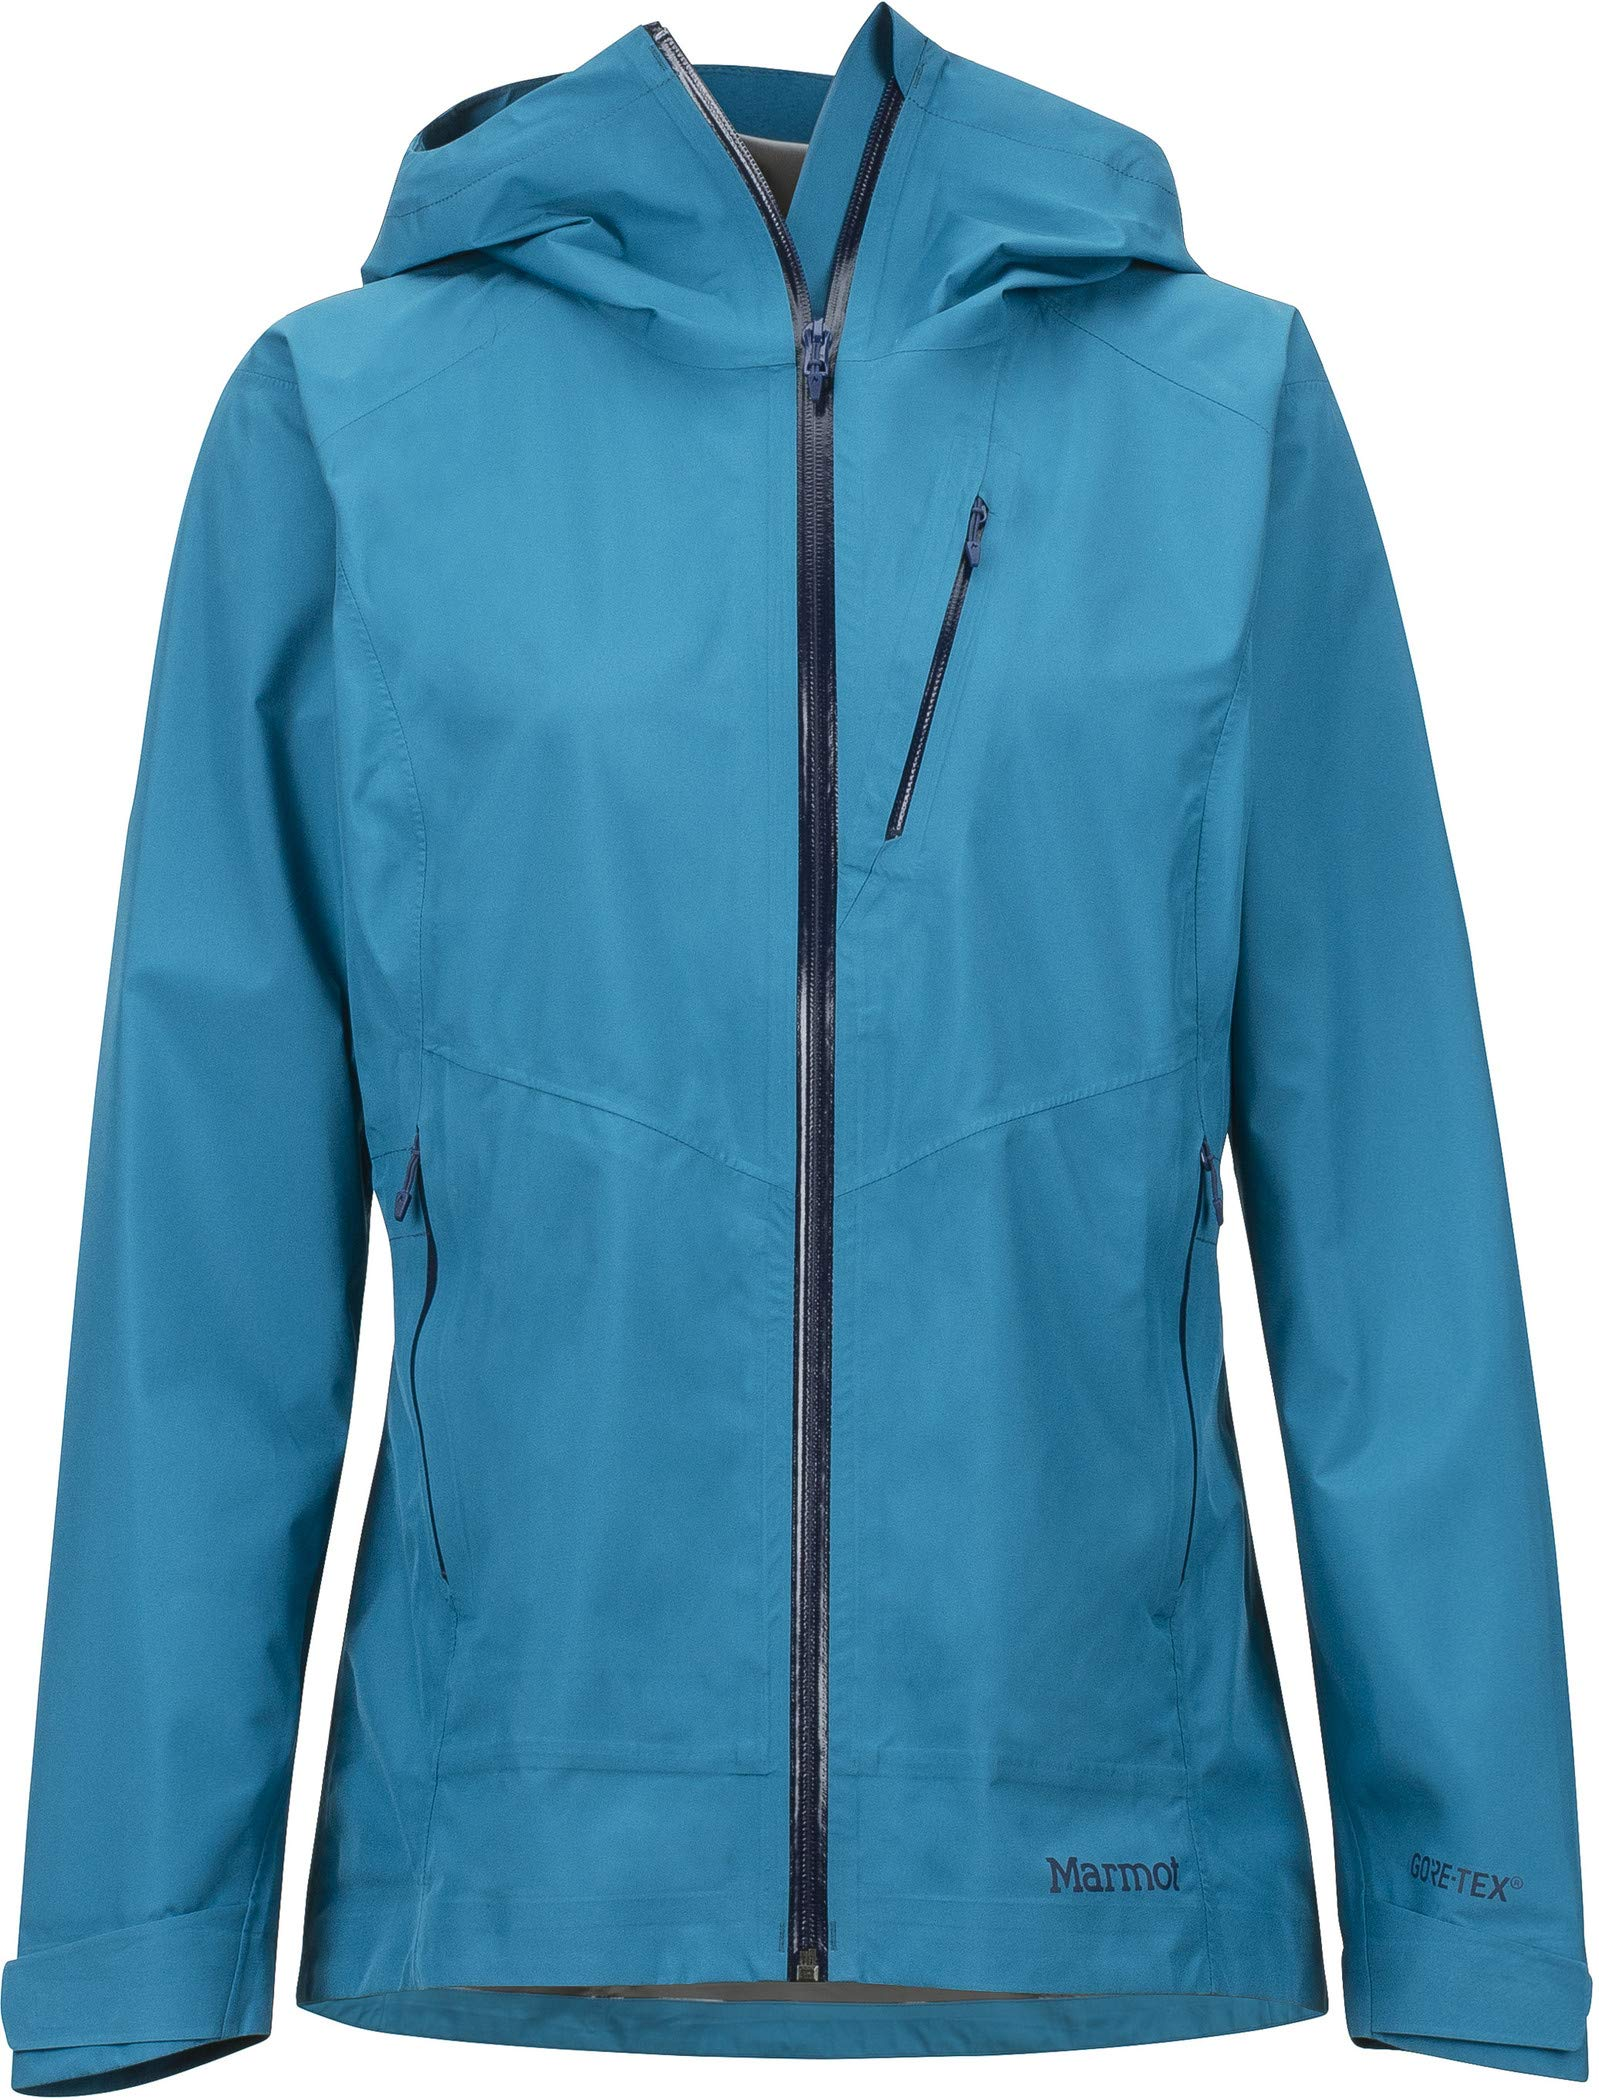 81UjB8lN CL - Marmot Women's Wm's Knife Edge Hardshell Rain Jacket, Raincoat, Windproof, Waterproof, Breathable